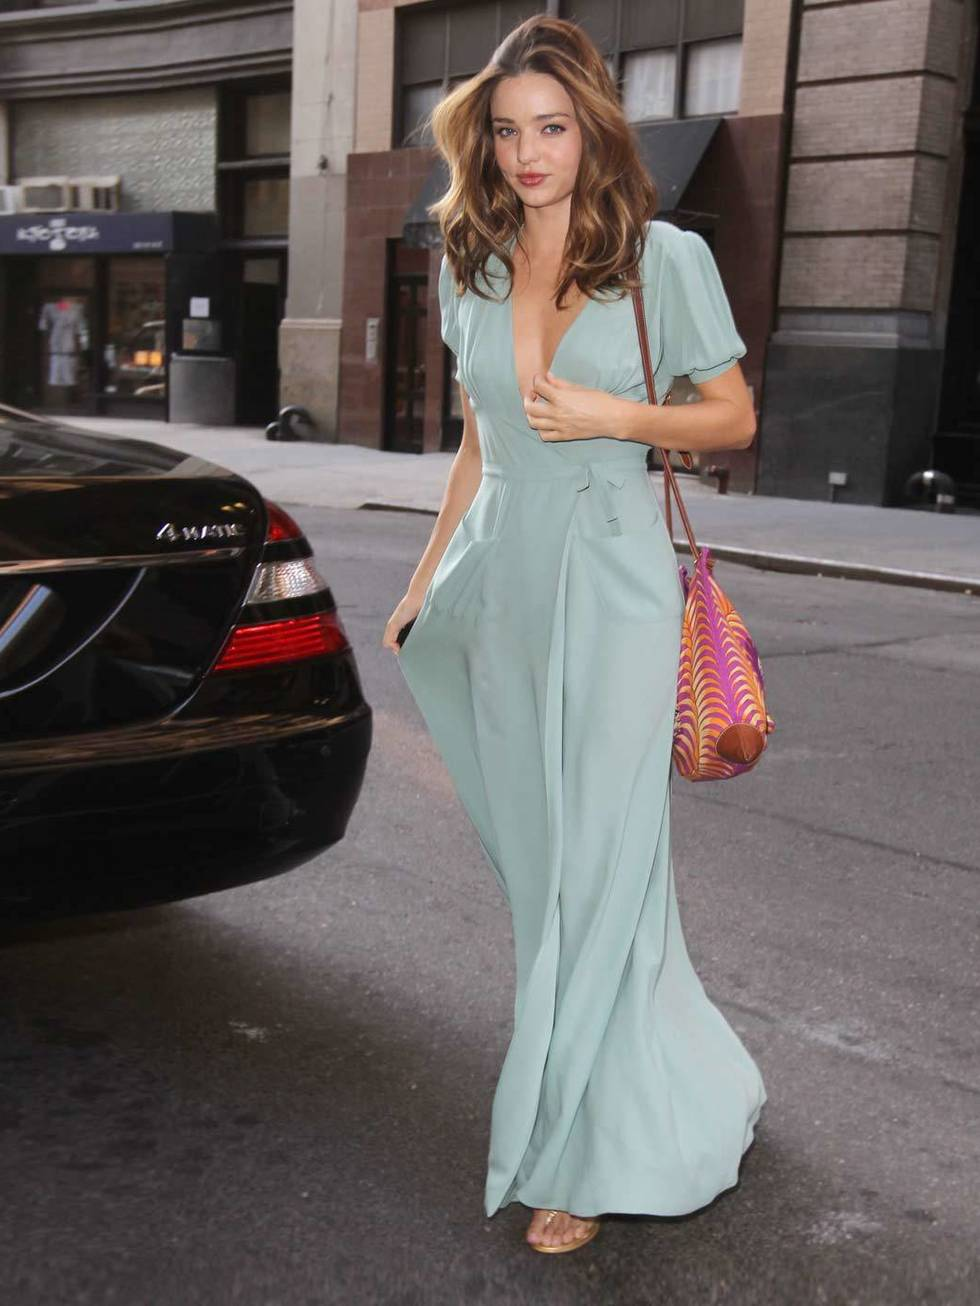 Miranda Kerr Style Images Galleries With A Bite